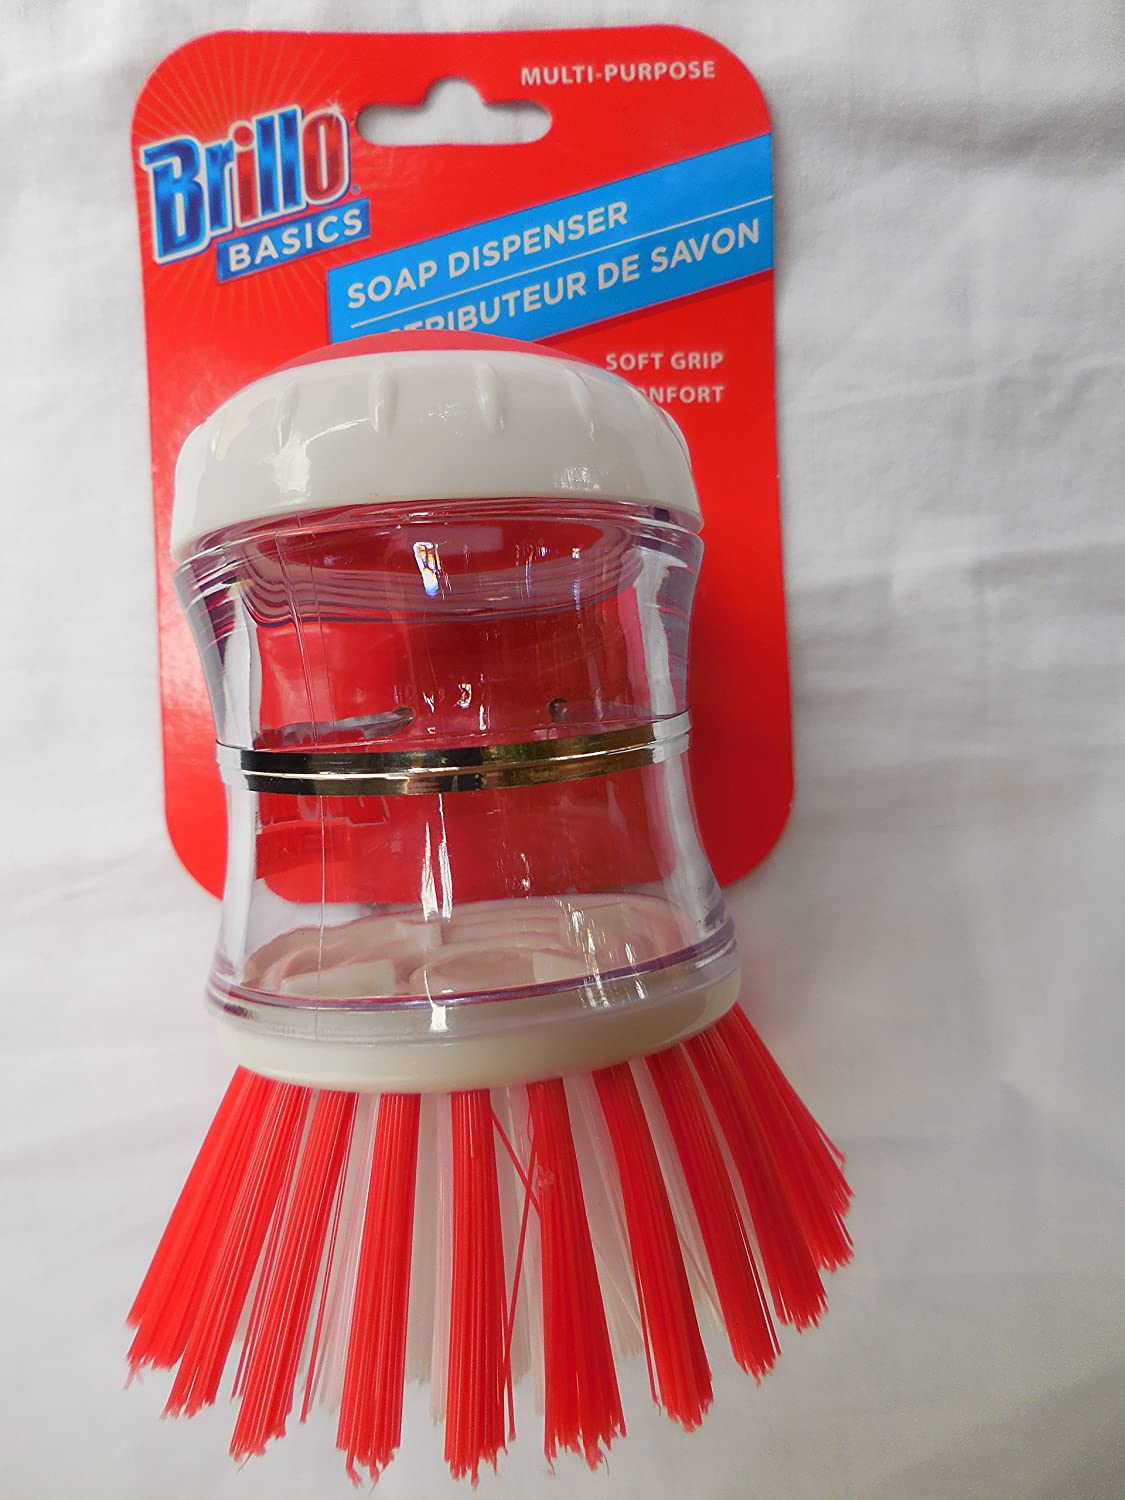 Soap Dispensing Palm Brush Kitchen Dish Wash Scrub Clean Dishwashing Bathroom BRILLO BASICS